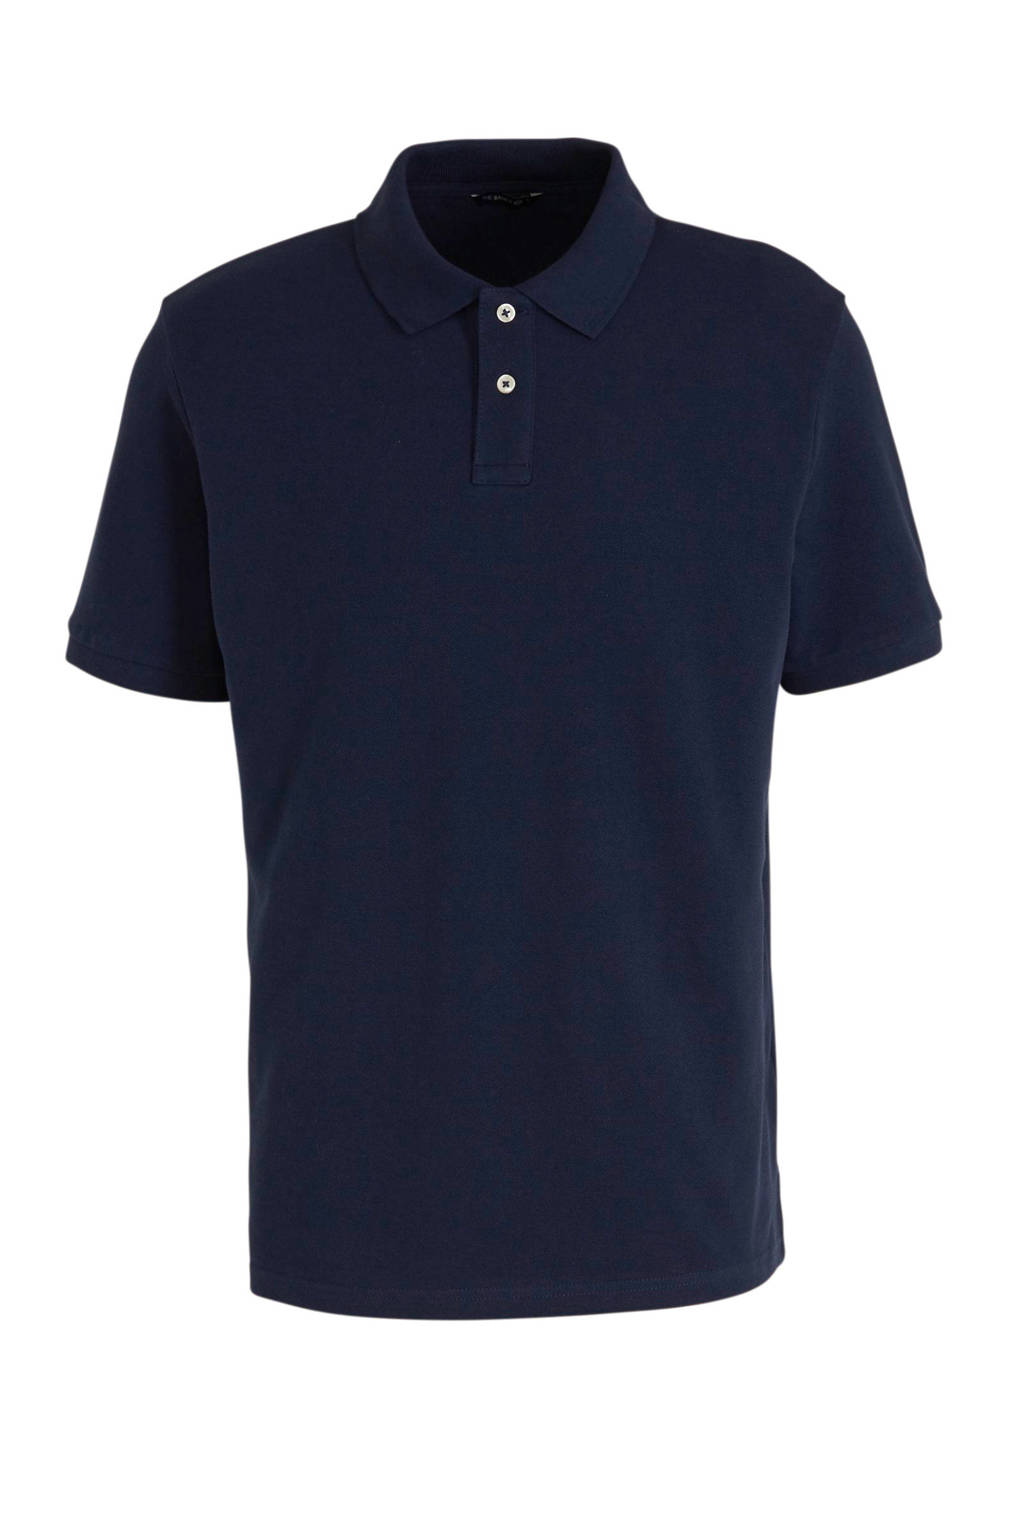 C&A Angelo Litrico regular fit polo donkerblauw, Donkerblauw